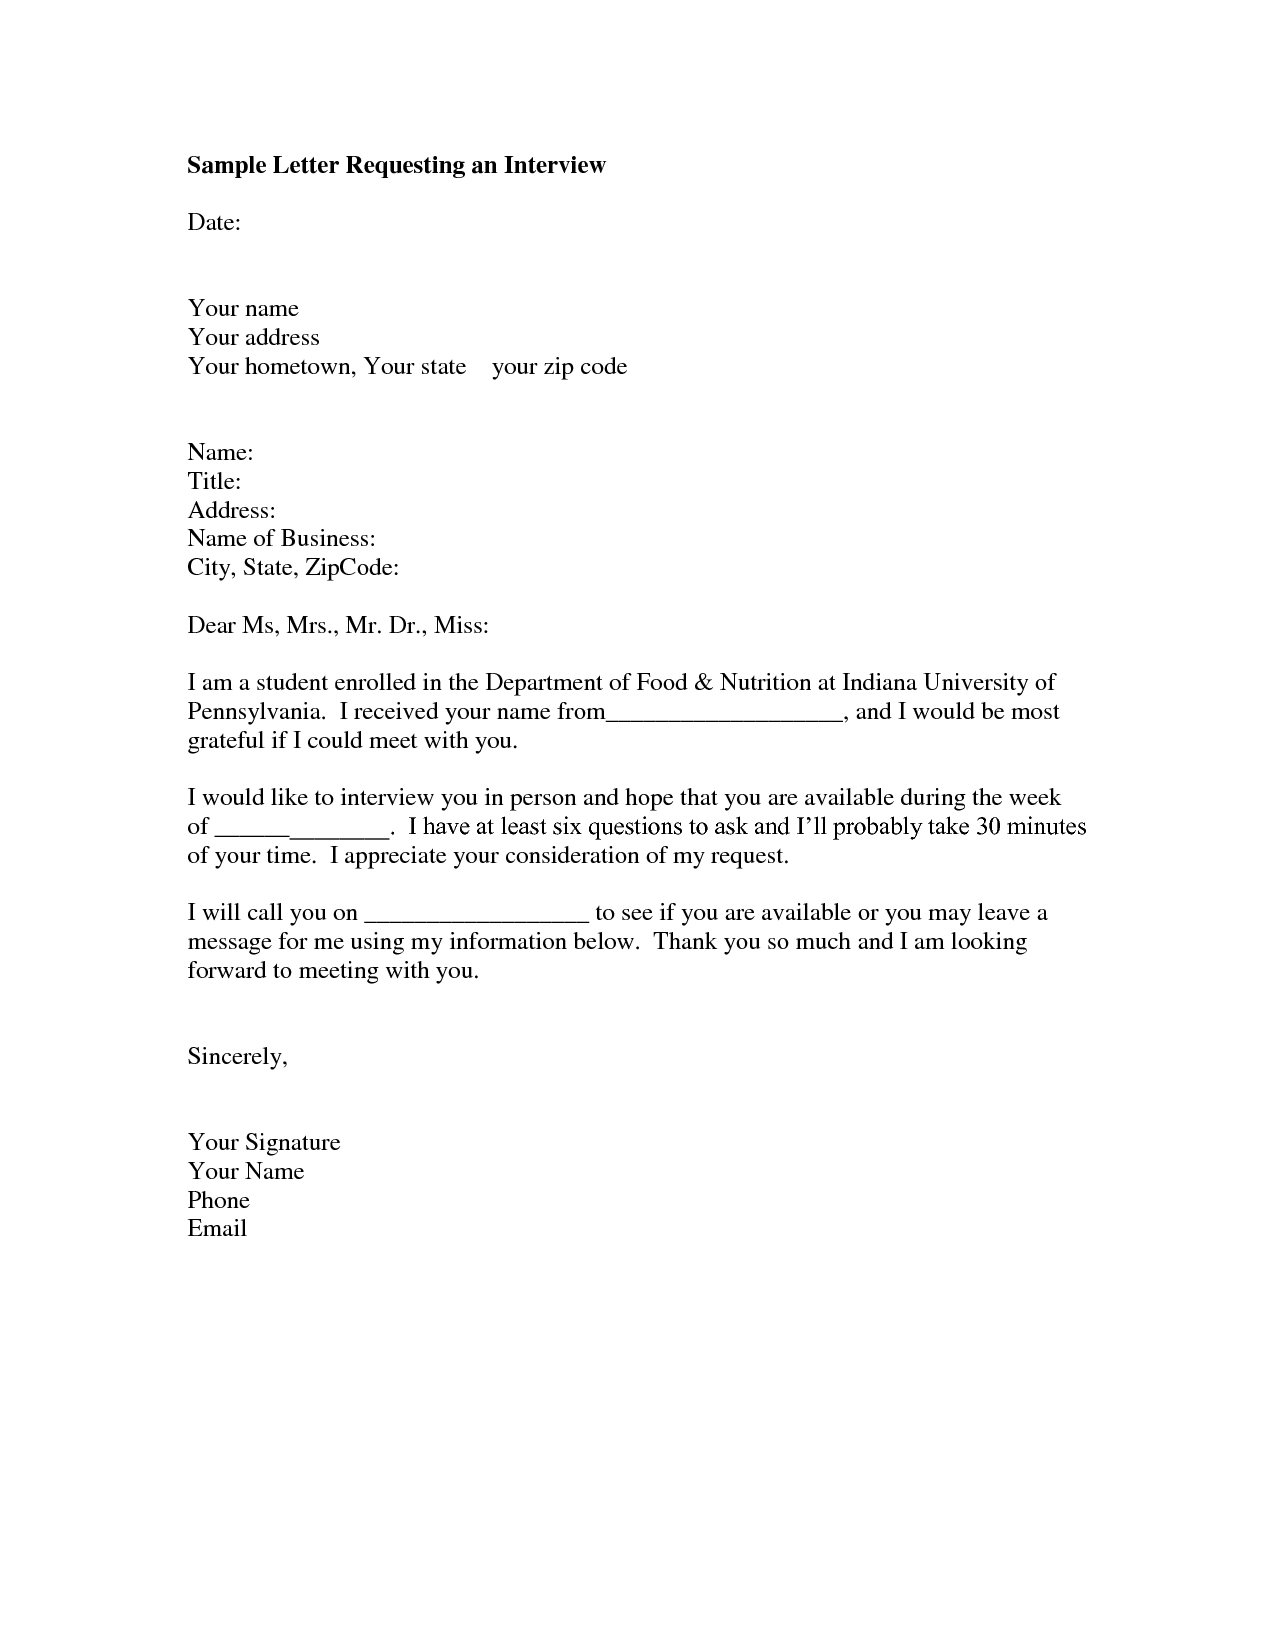 Interview request letter sample format of a letter you for Do i bring a cover letter to an interview